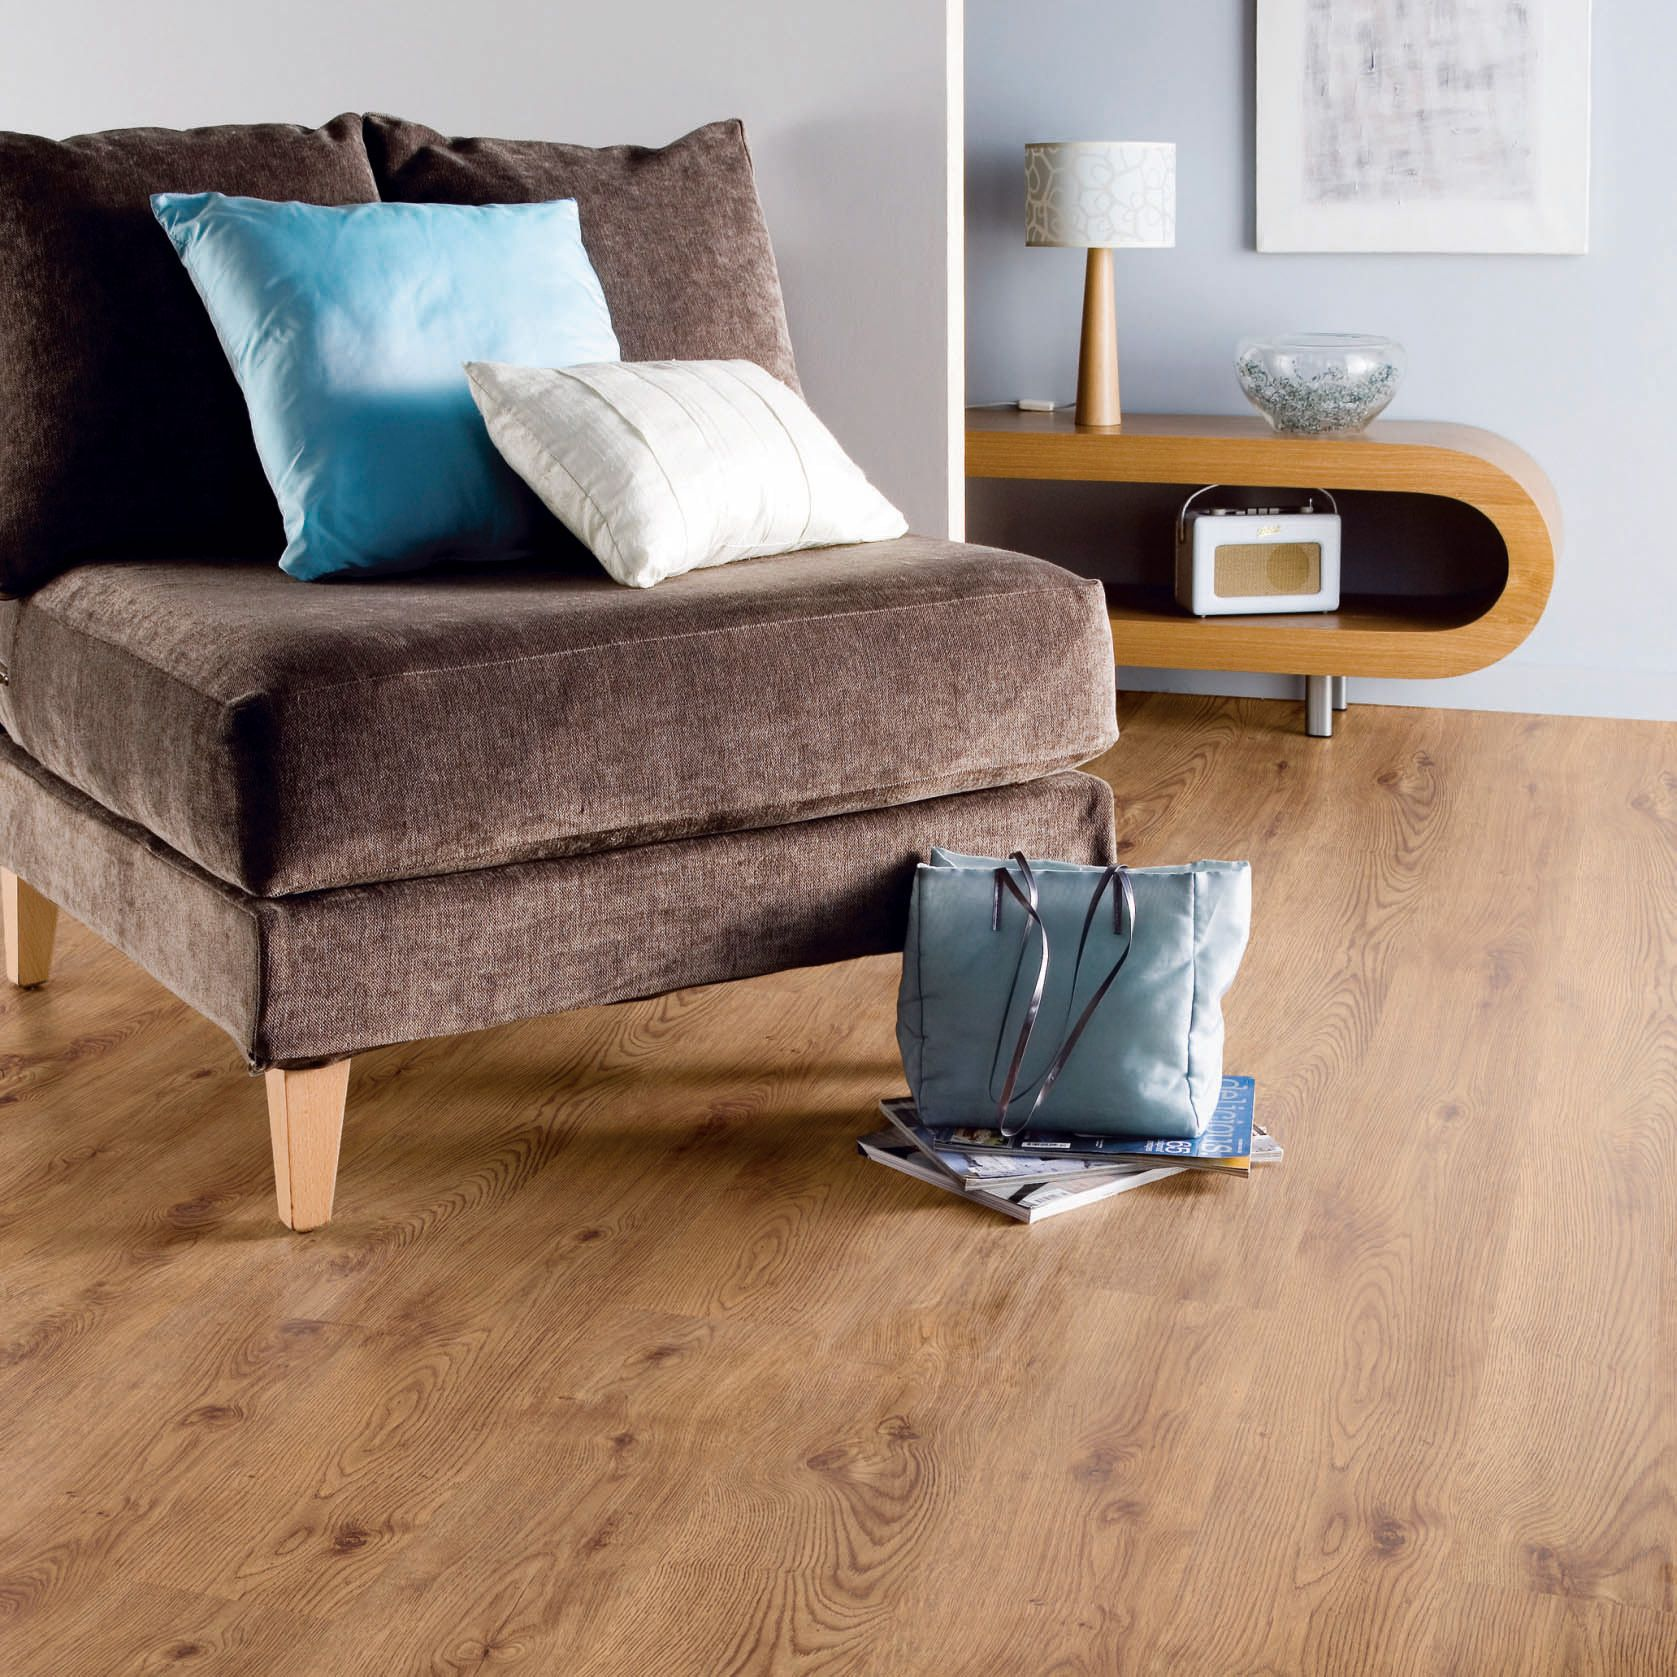 Oak Plank Effect Laminate Flooring 2 5 M Pack Departments Diy At B Q